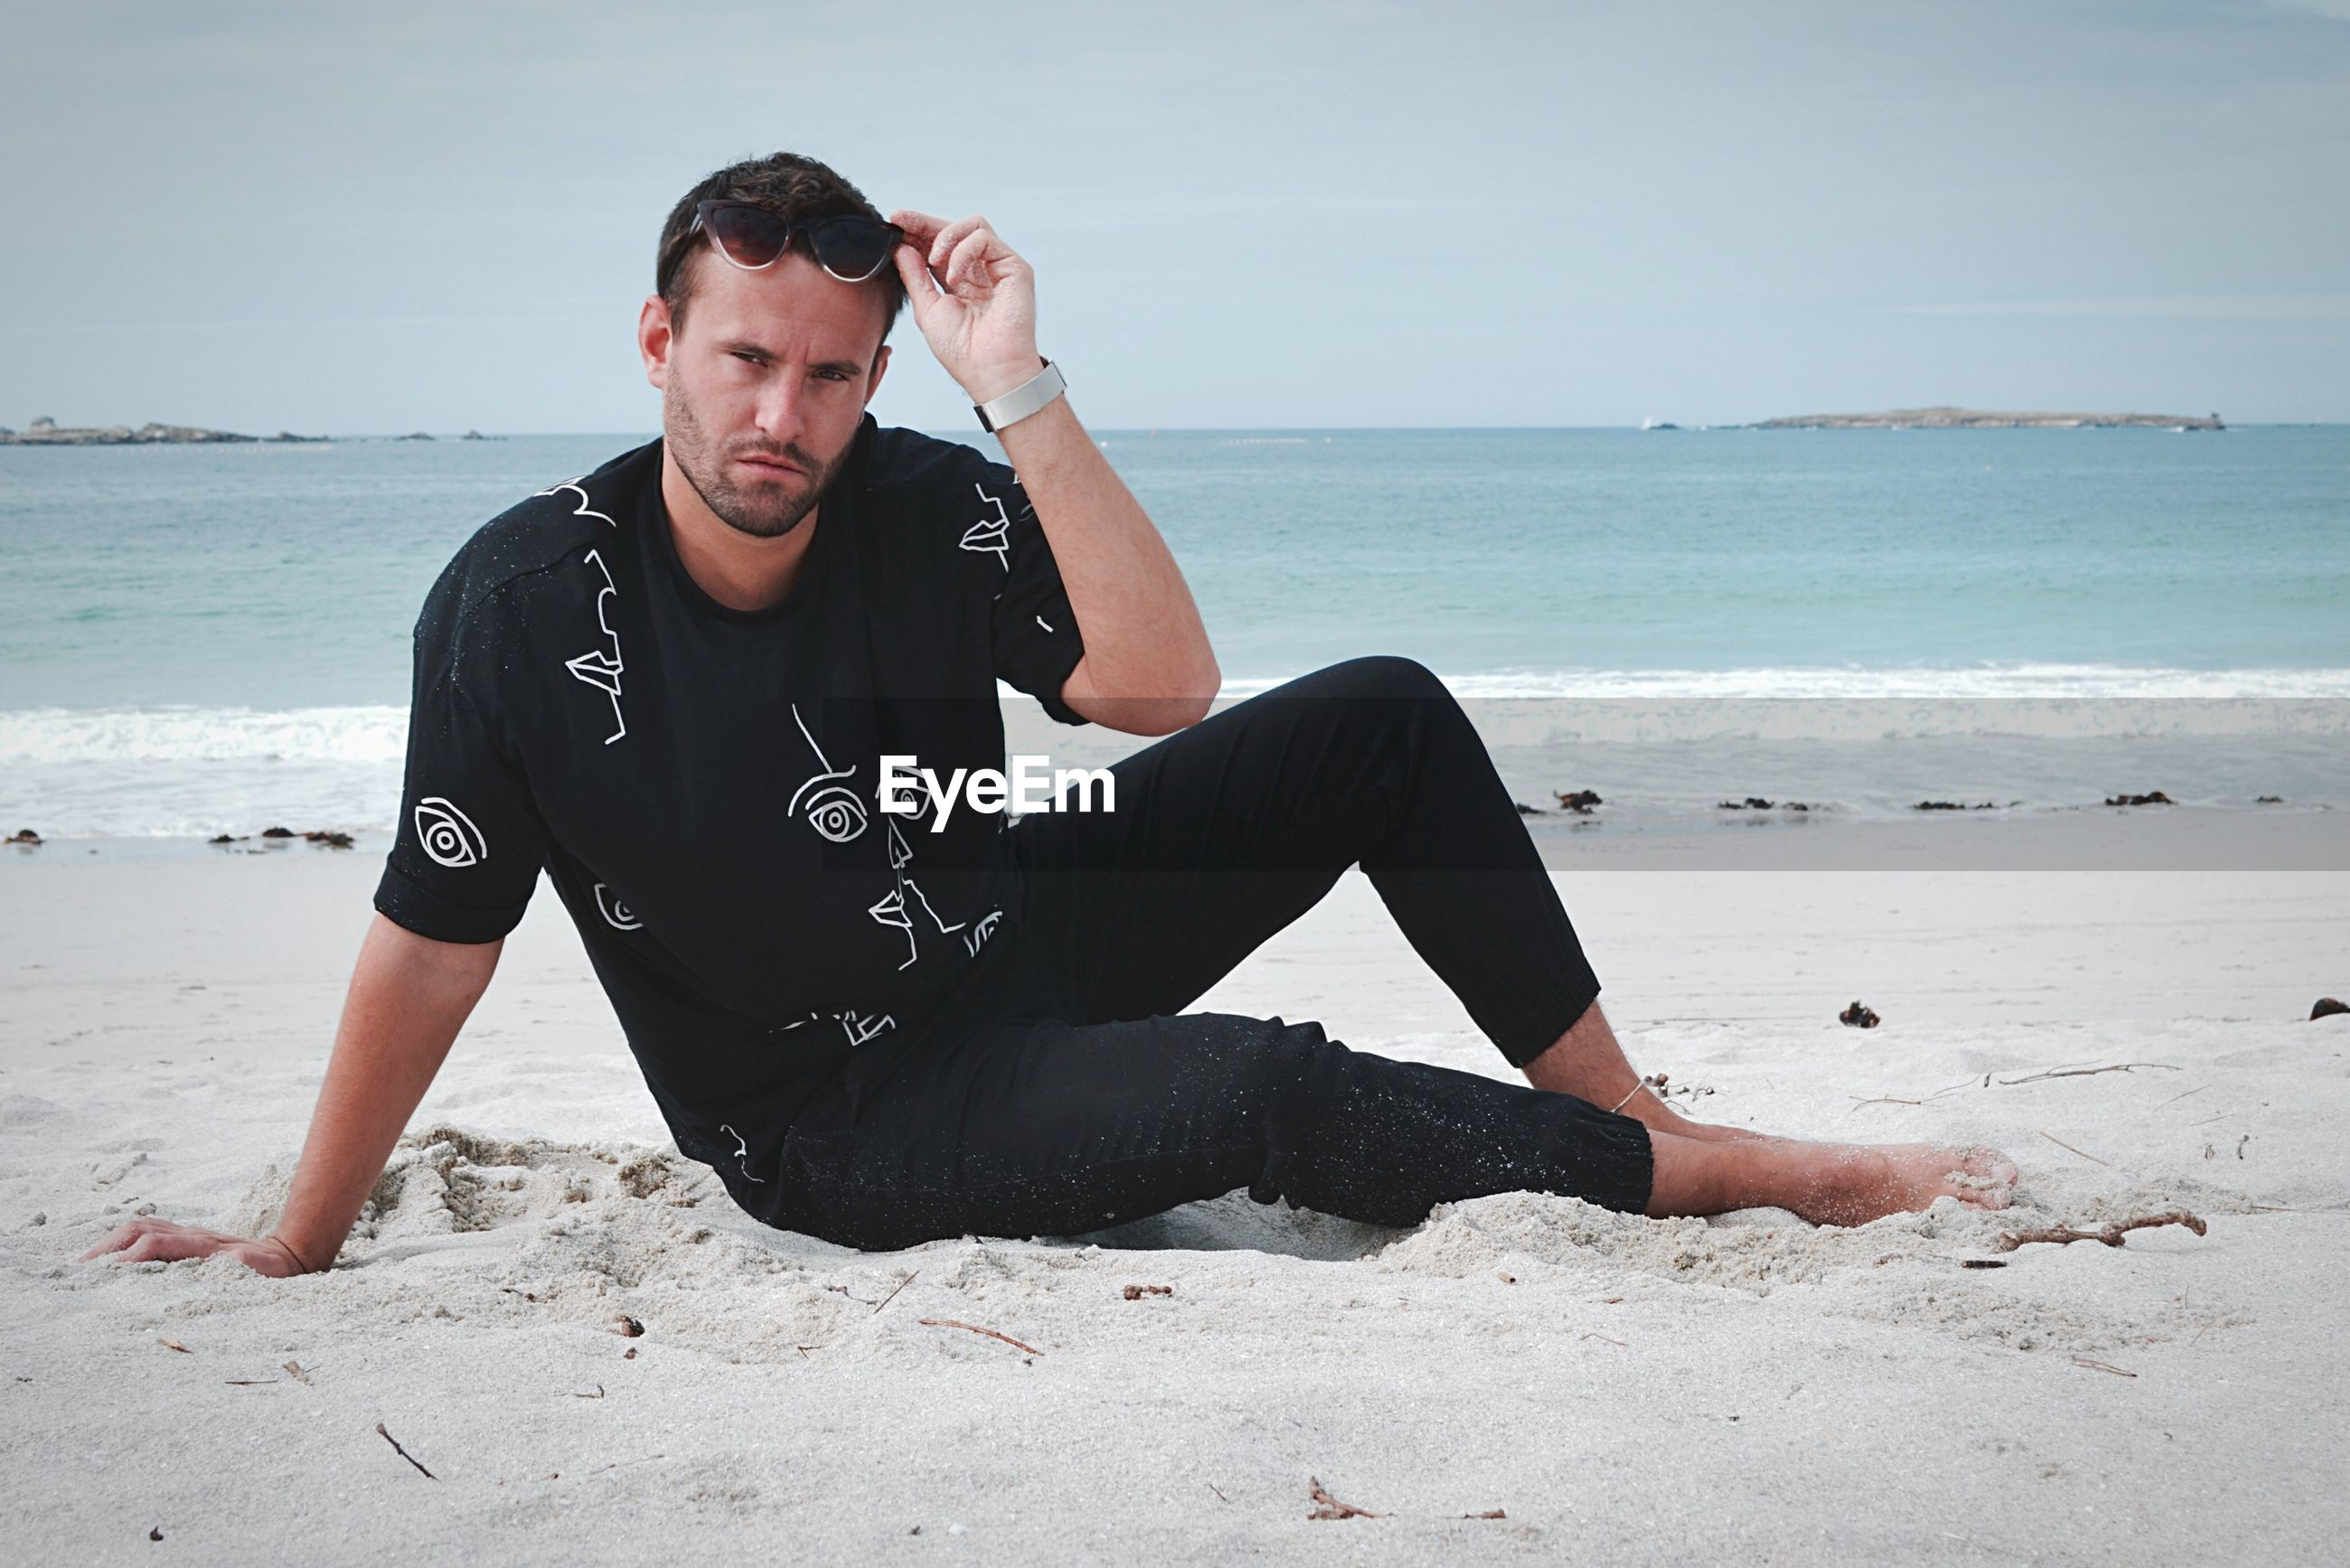 YOUNG MAN SITTING ON BEACH AGAINST SEA